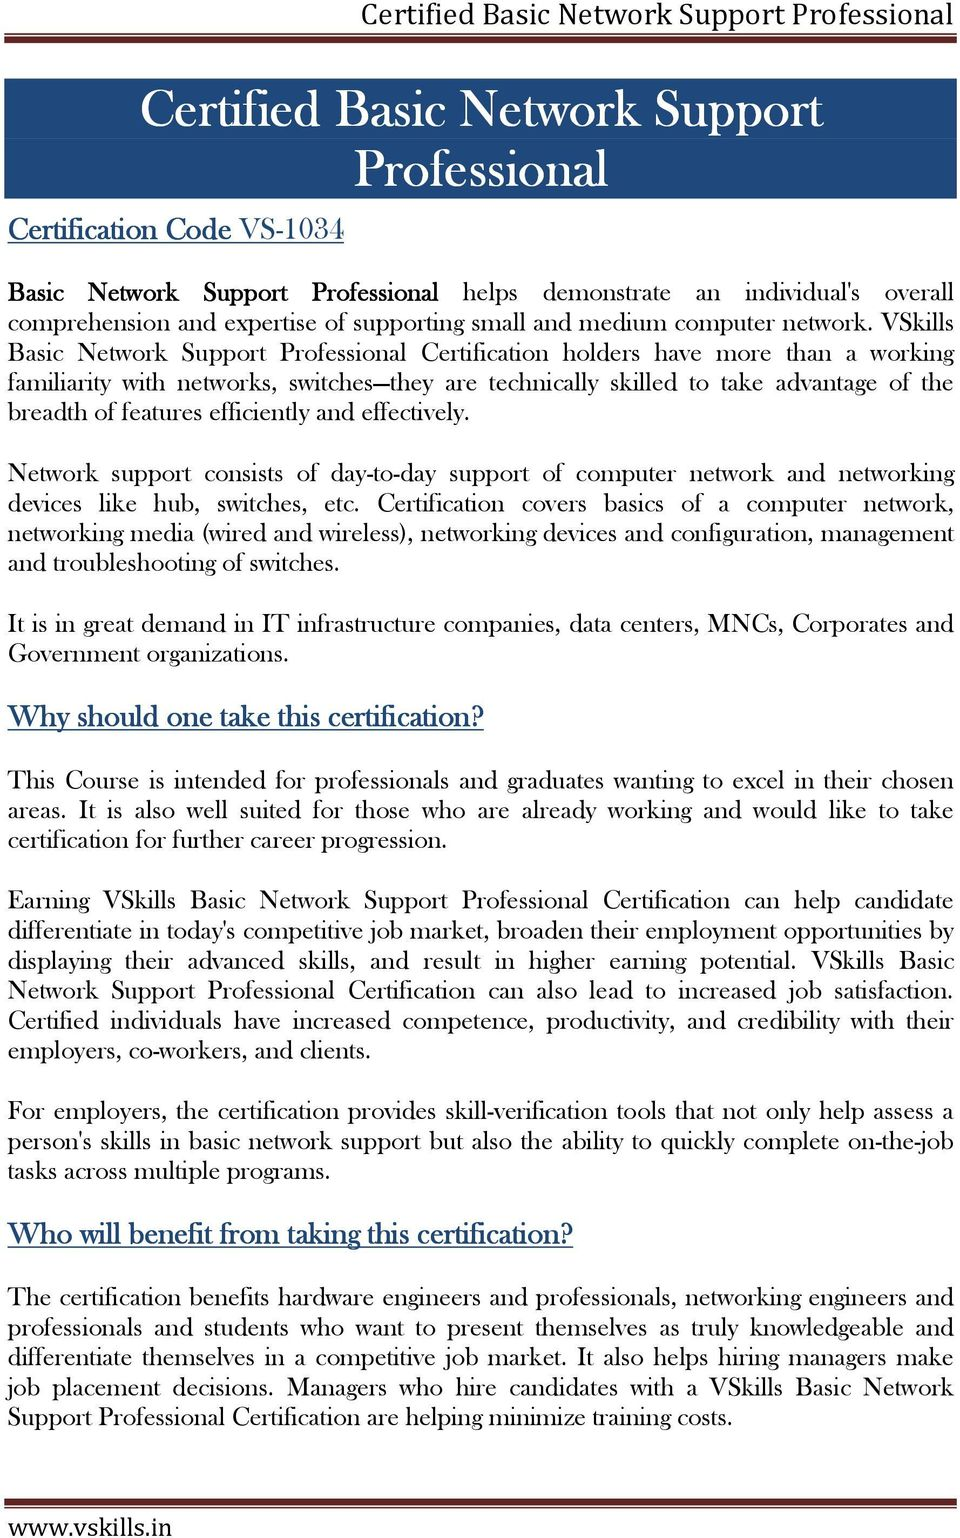 VSkills Basic Network Support Professional Certification holders have more than a working familiarity with networks, switches they are technically skilled to take advantage of the breadth of features